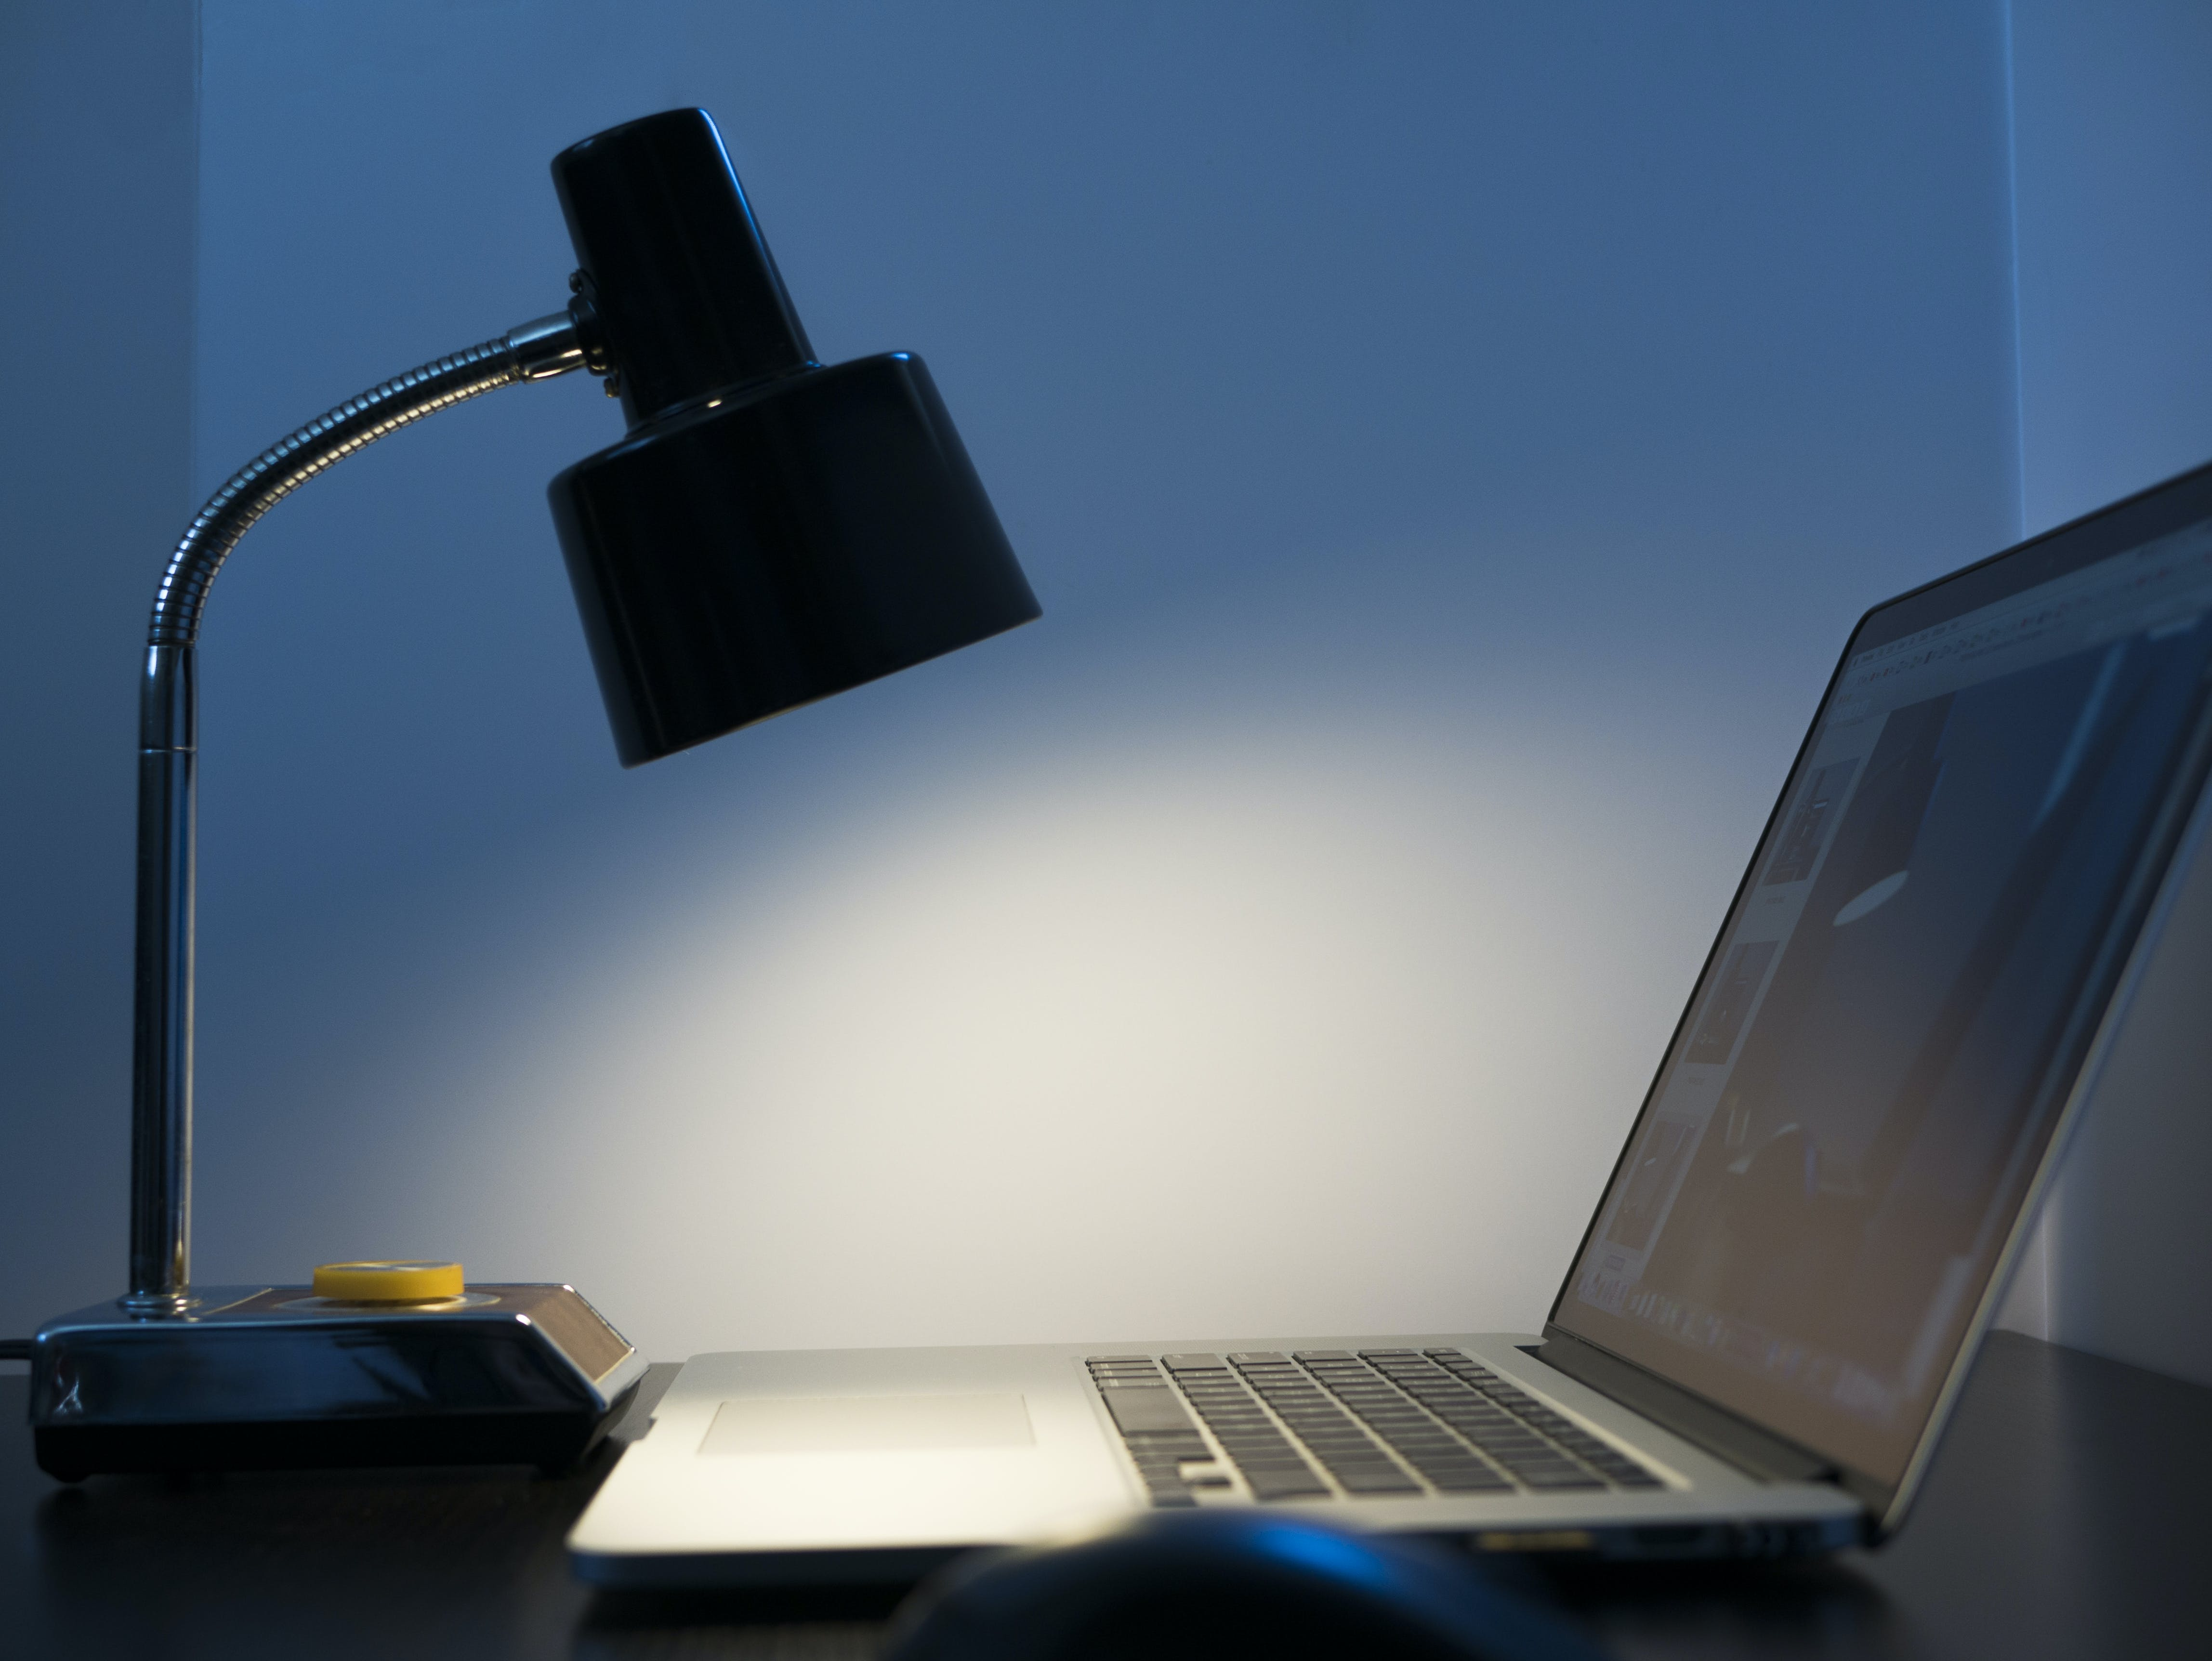 Free stock photo of computer, lamp, laptop, light